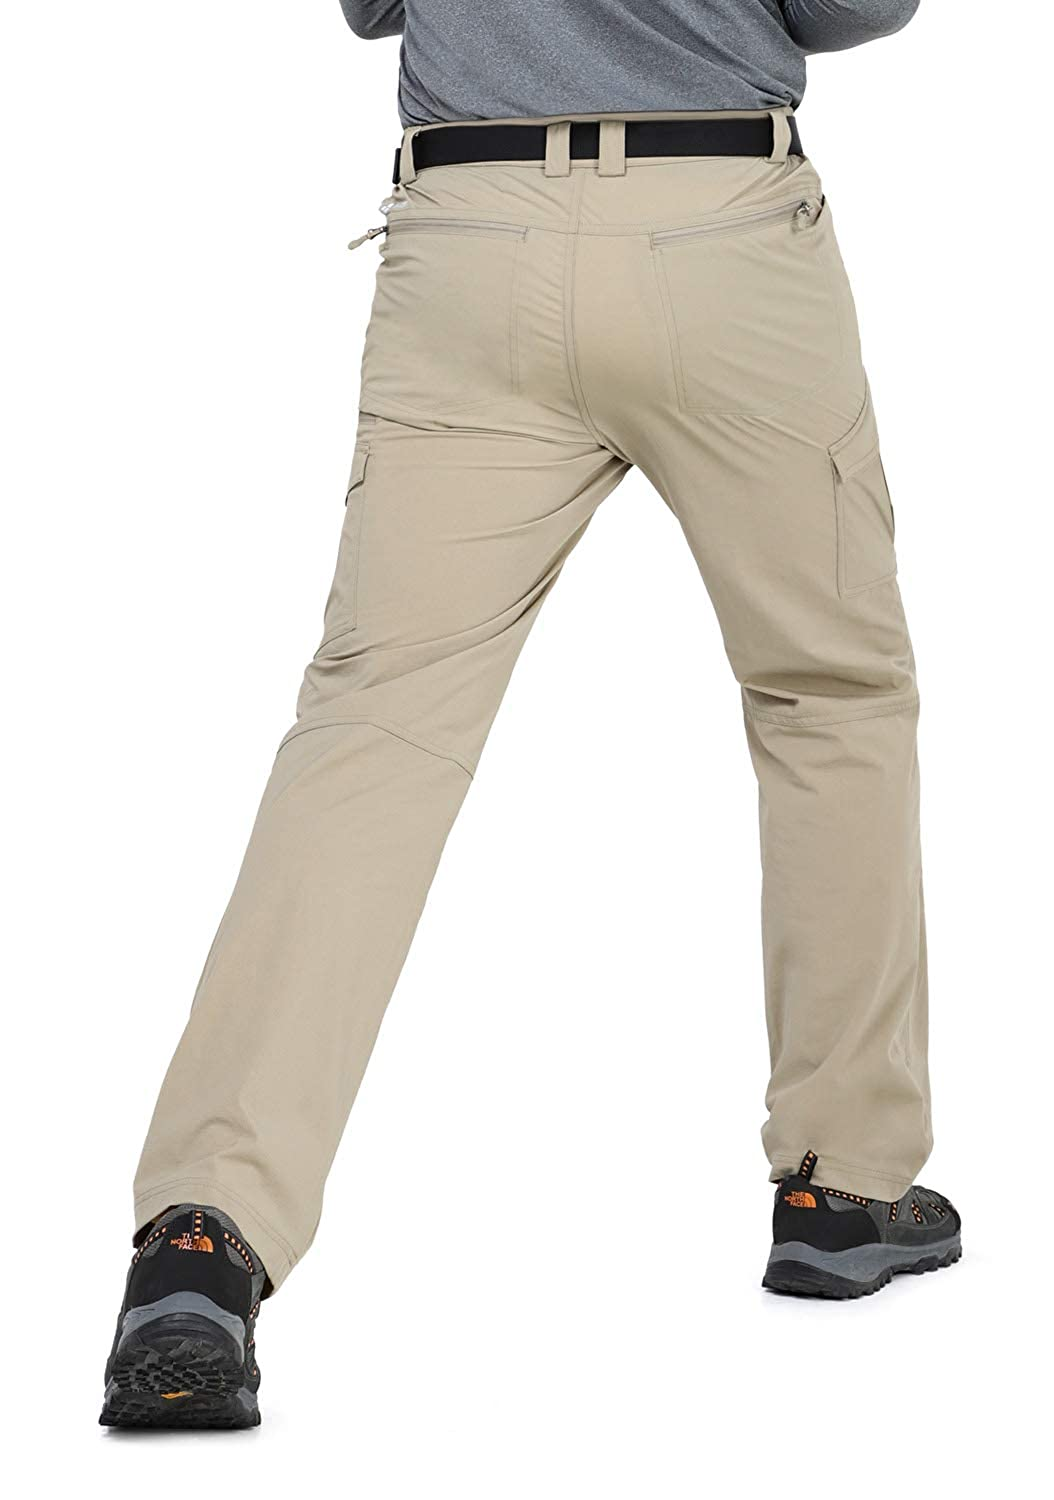 MIER Mens Stretch Hiking Pants Quick Dry Outdoor Cargo Pants 7 Pockets Lightweight and Water Resistant